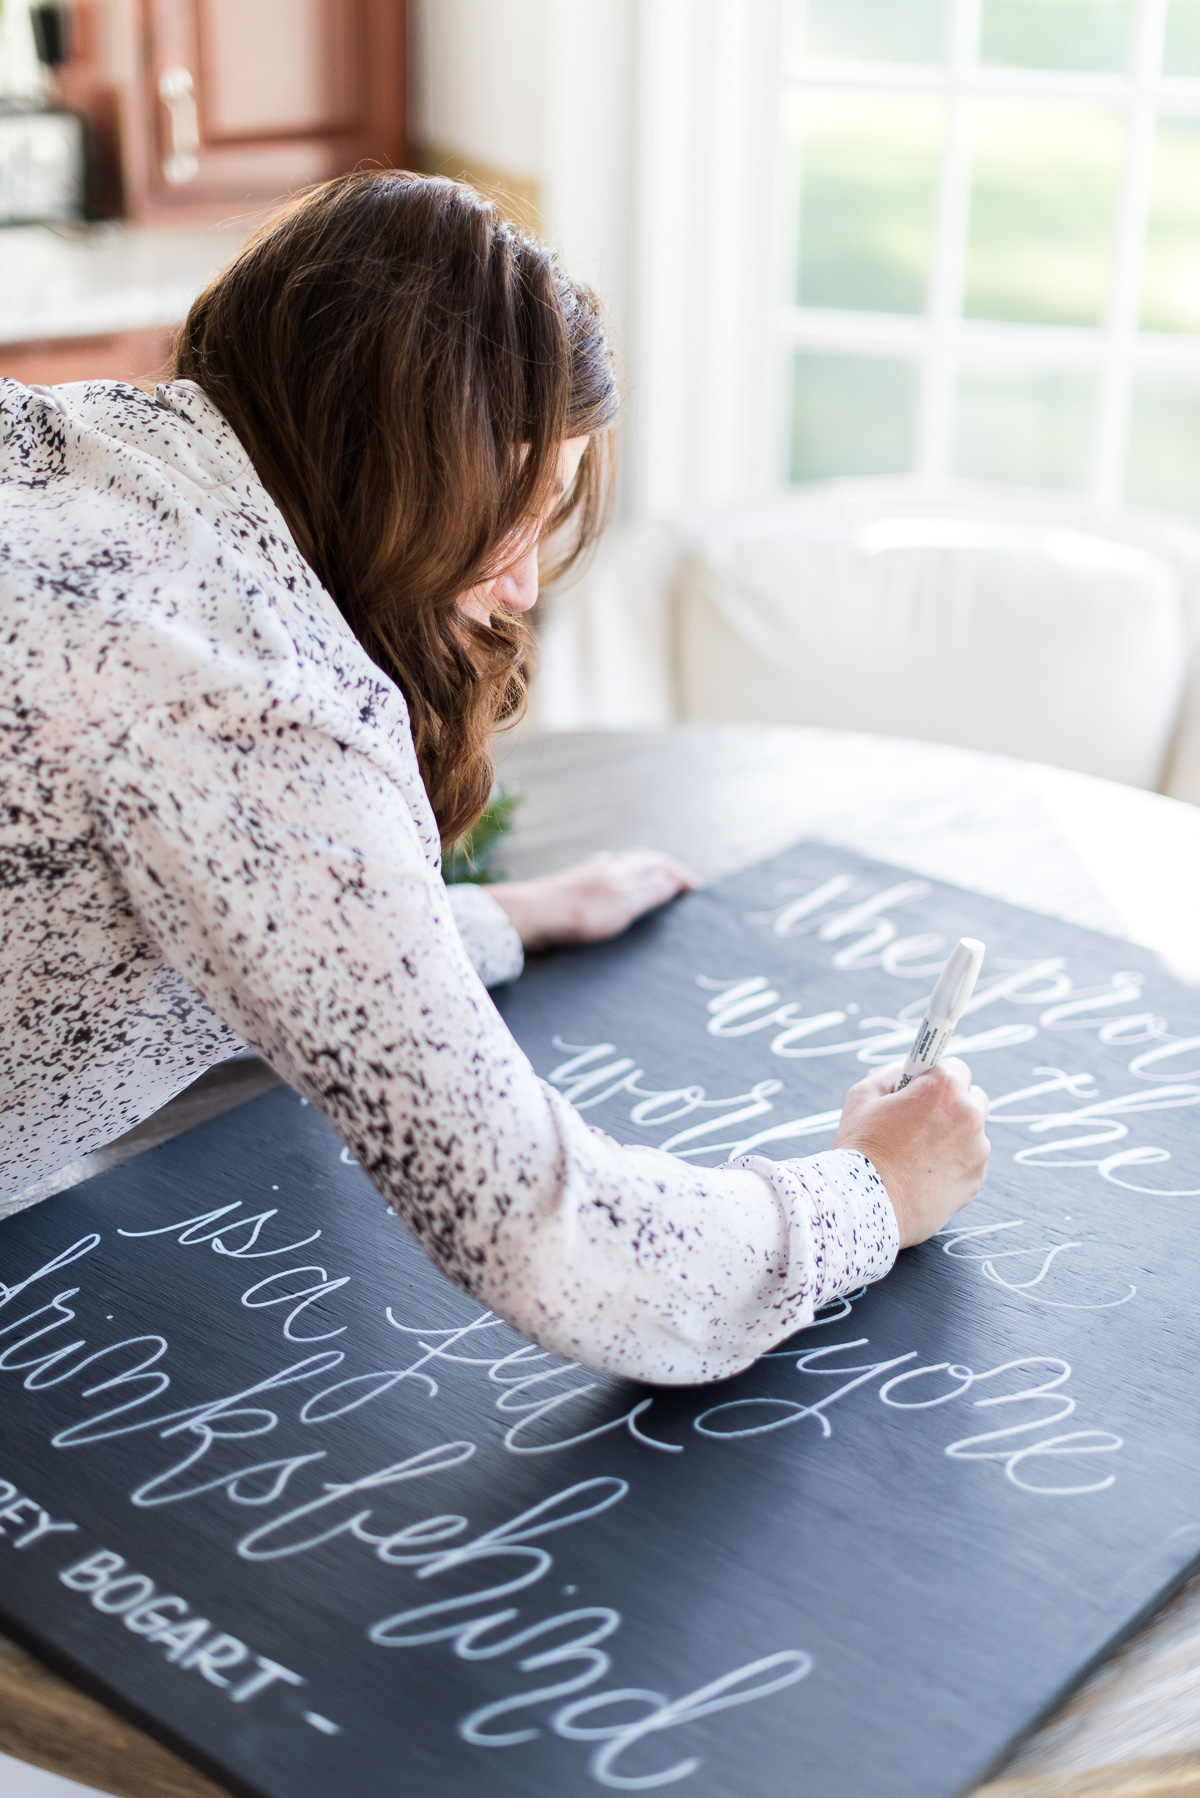 Laura Hooper Calligraphy_Calligraphy services-11